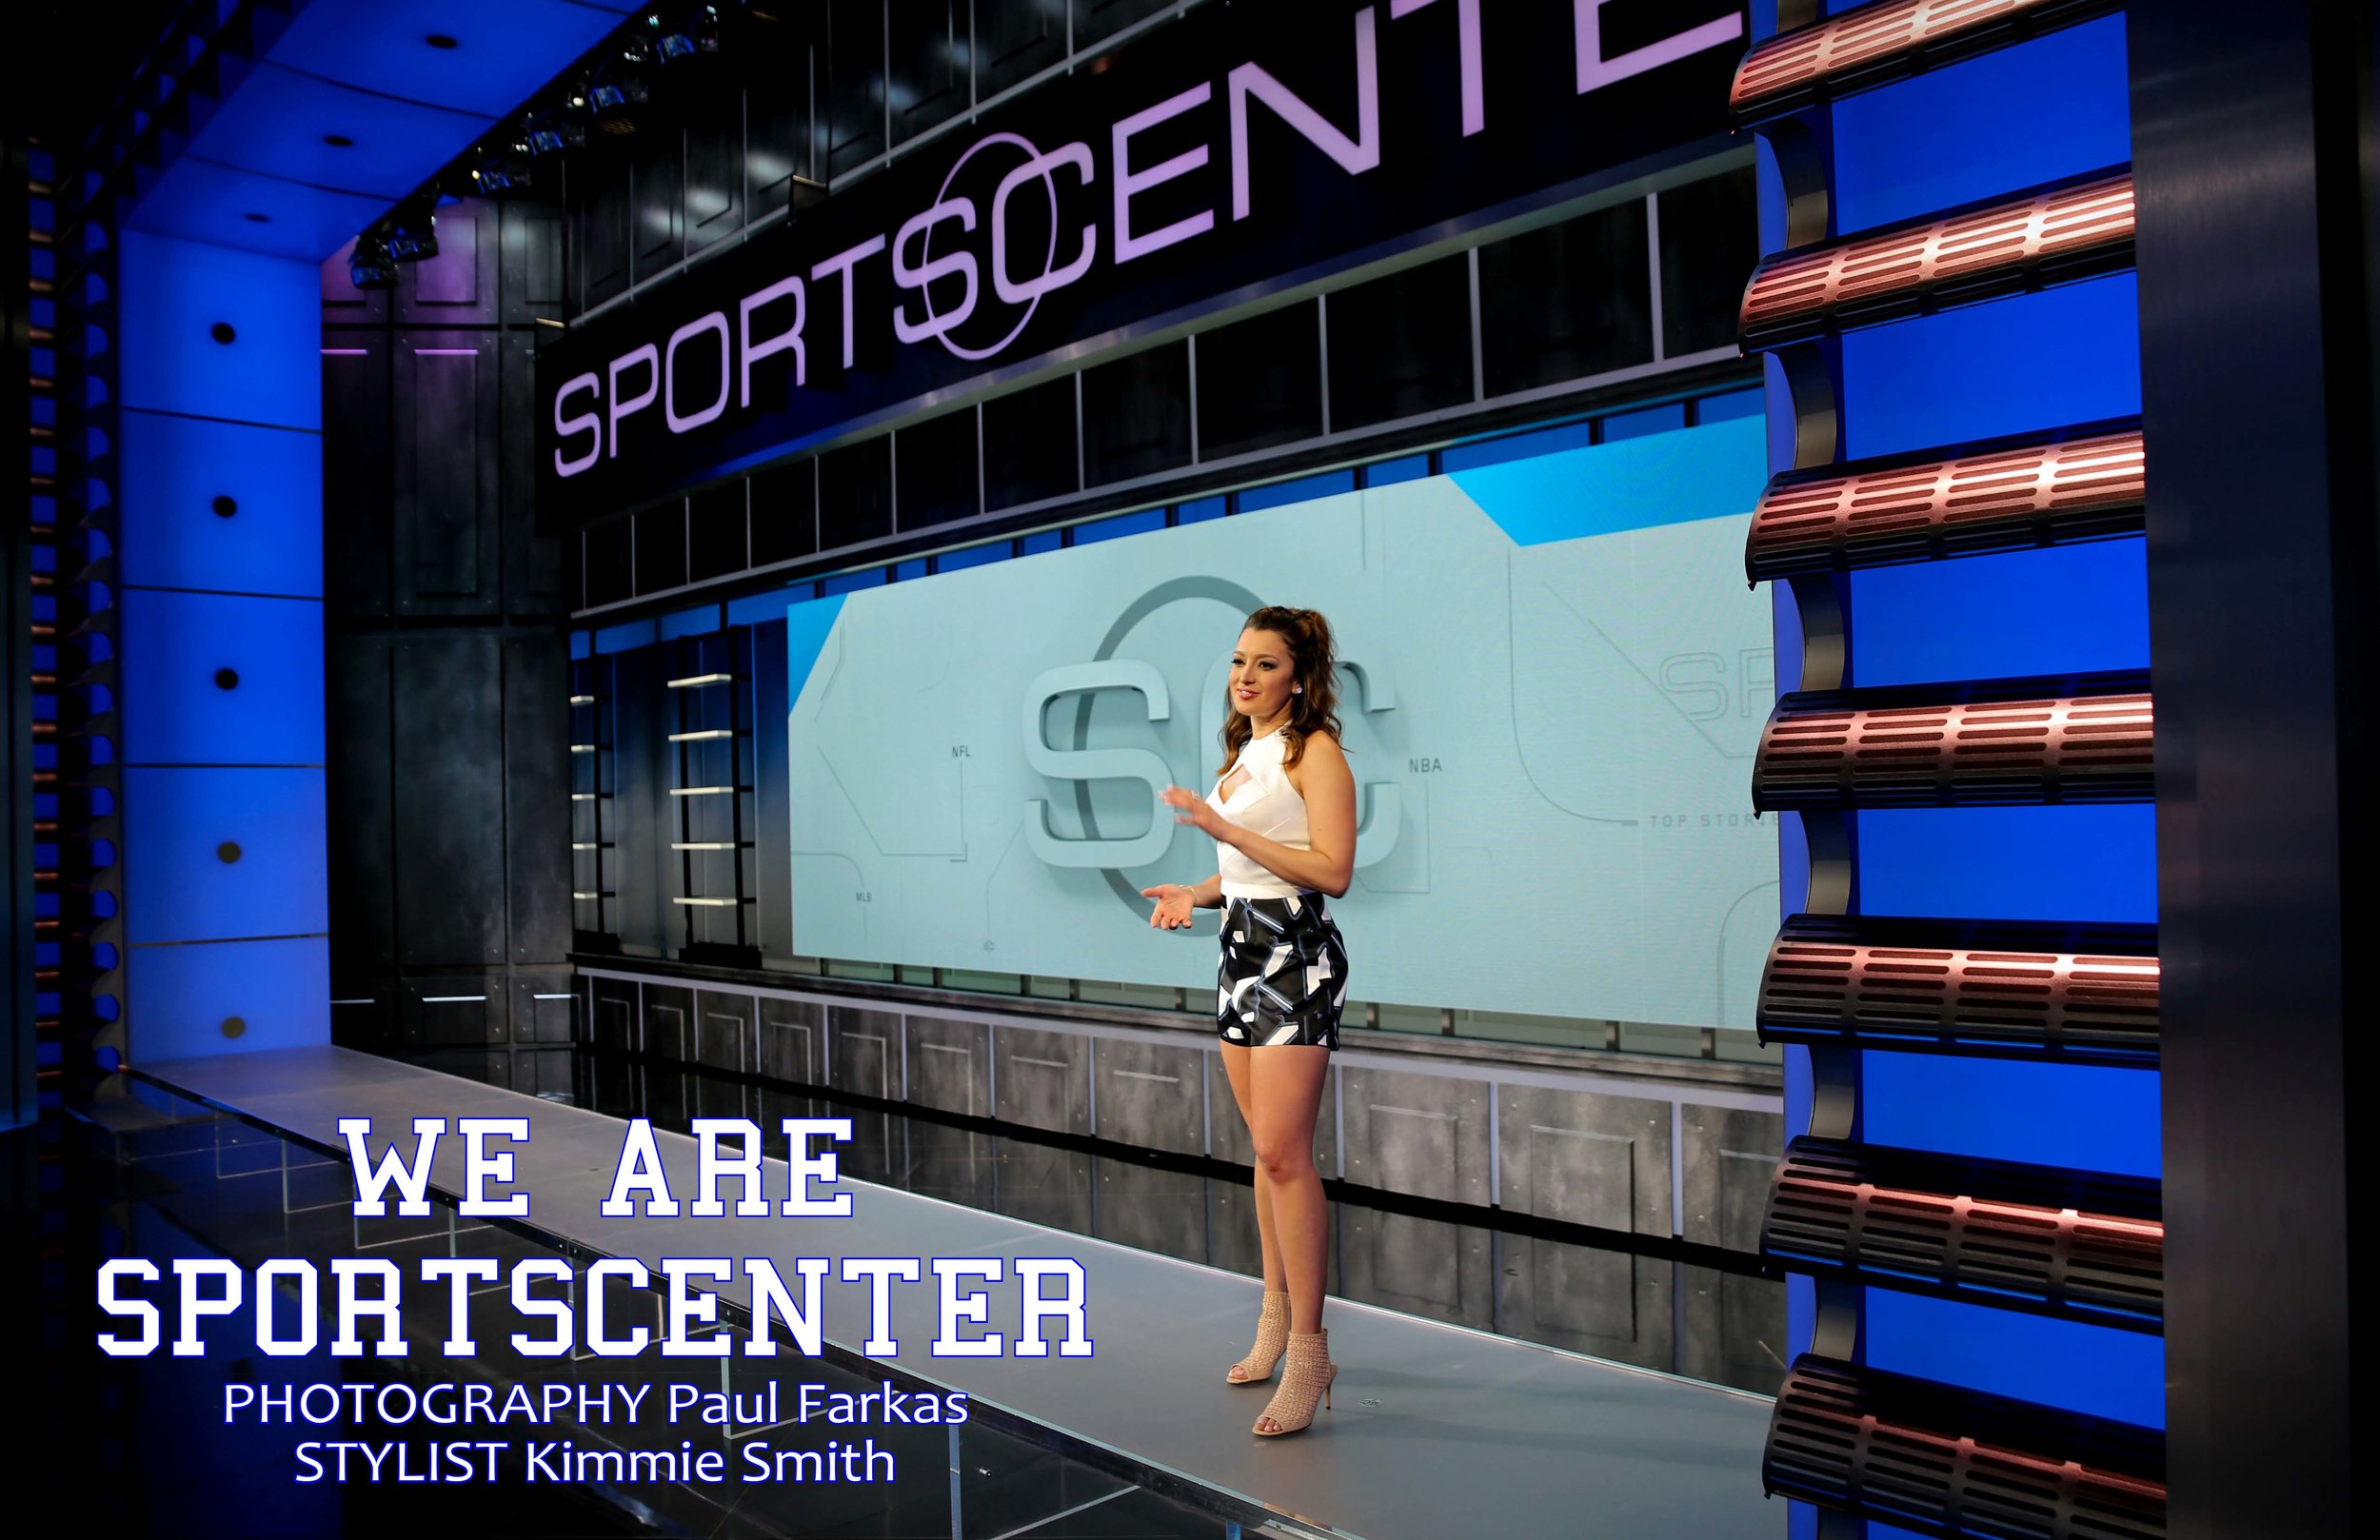 SHOT @ ESPN  in Bristol CT |  PHOTOGRAPHY  Paul Farkas |  STYLIST  Kimmie Smith |